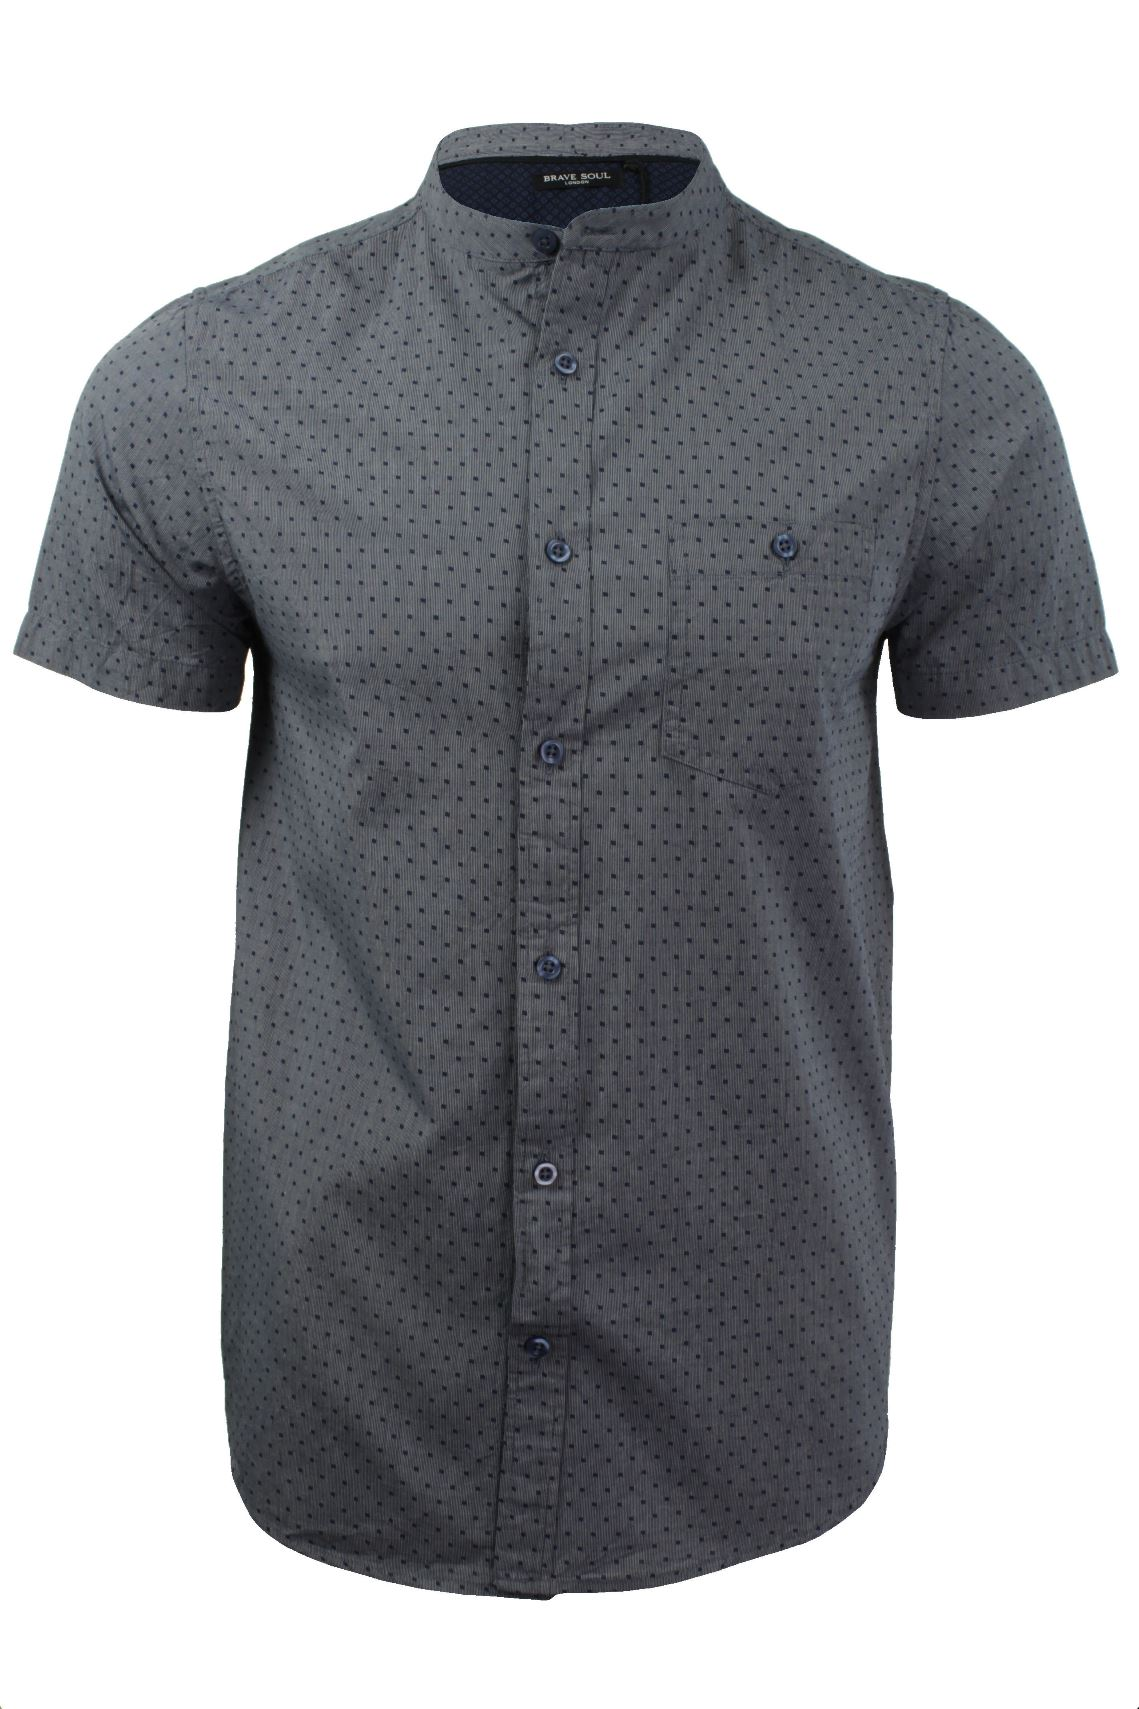 Mens grandad shirt by brave soul short sleeved ebay for Short sleeve grandad shirt